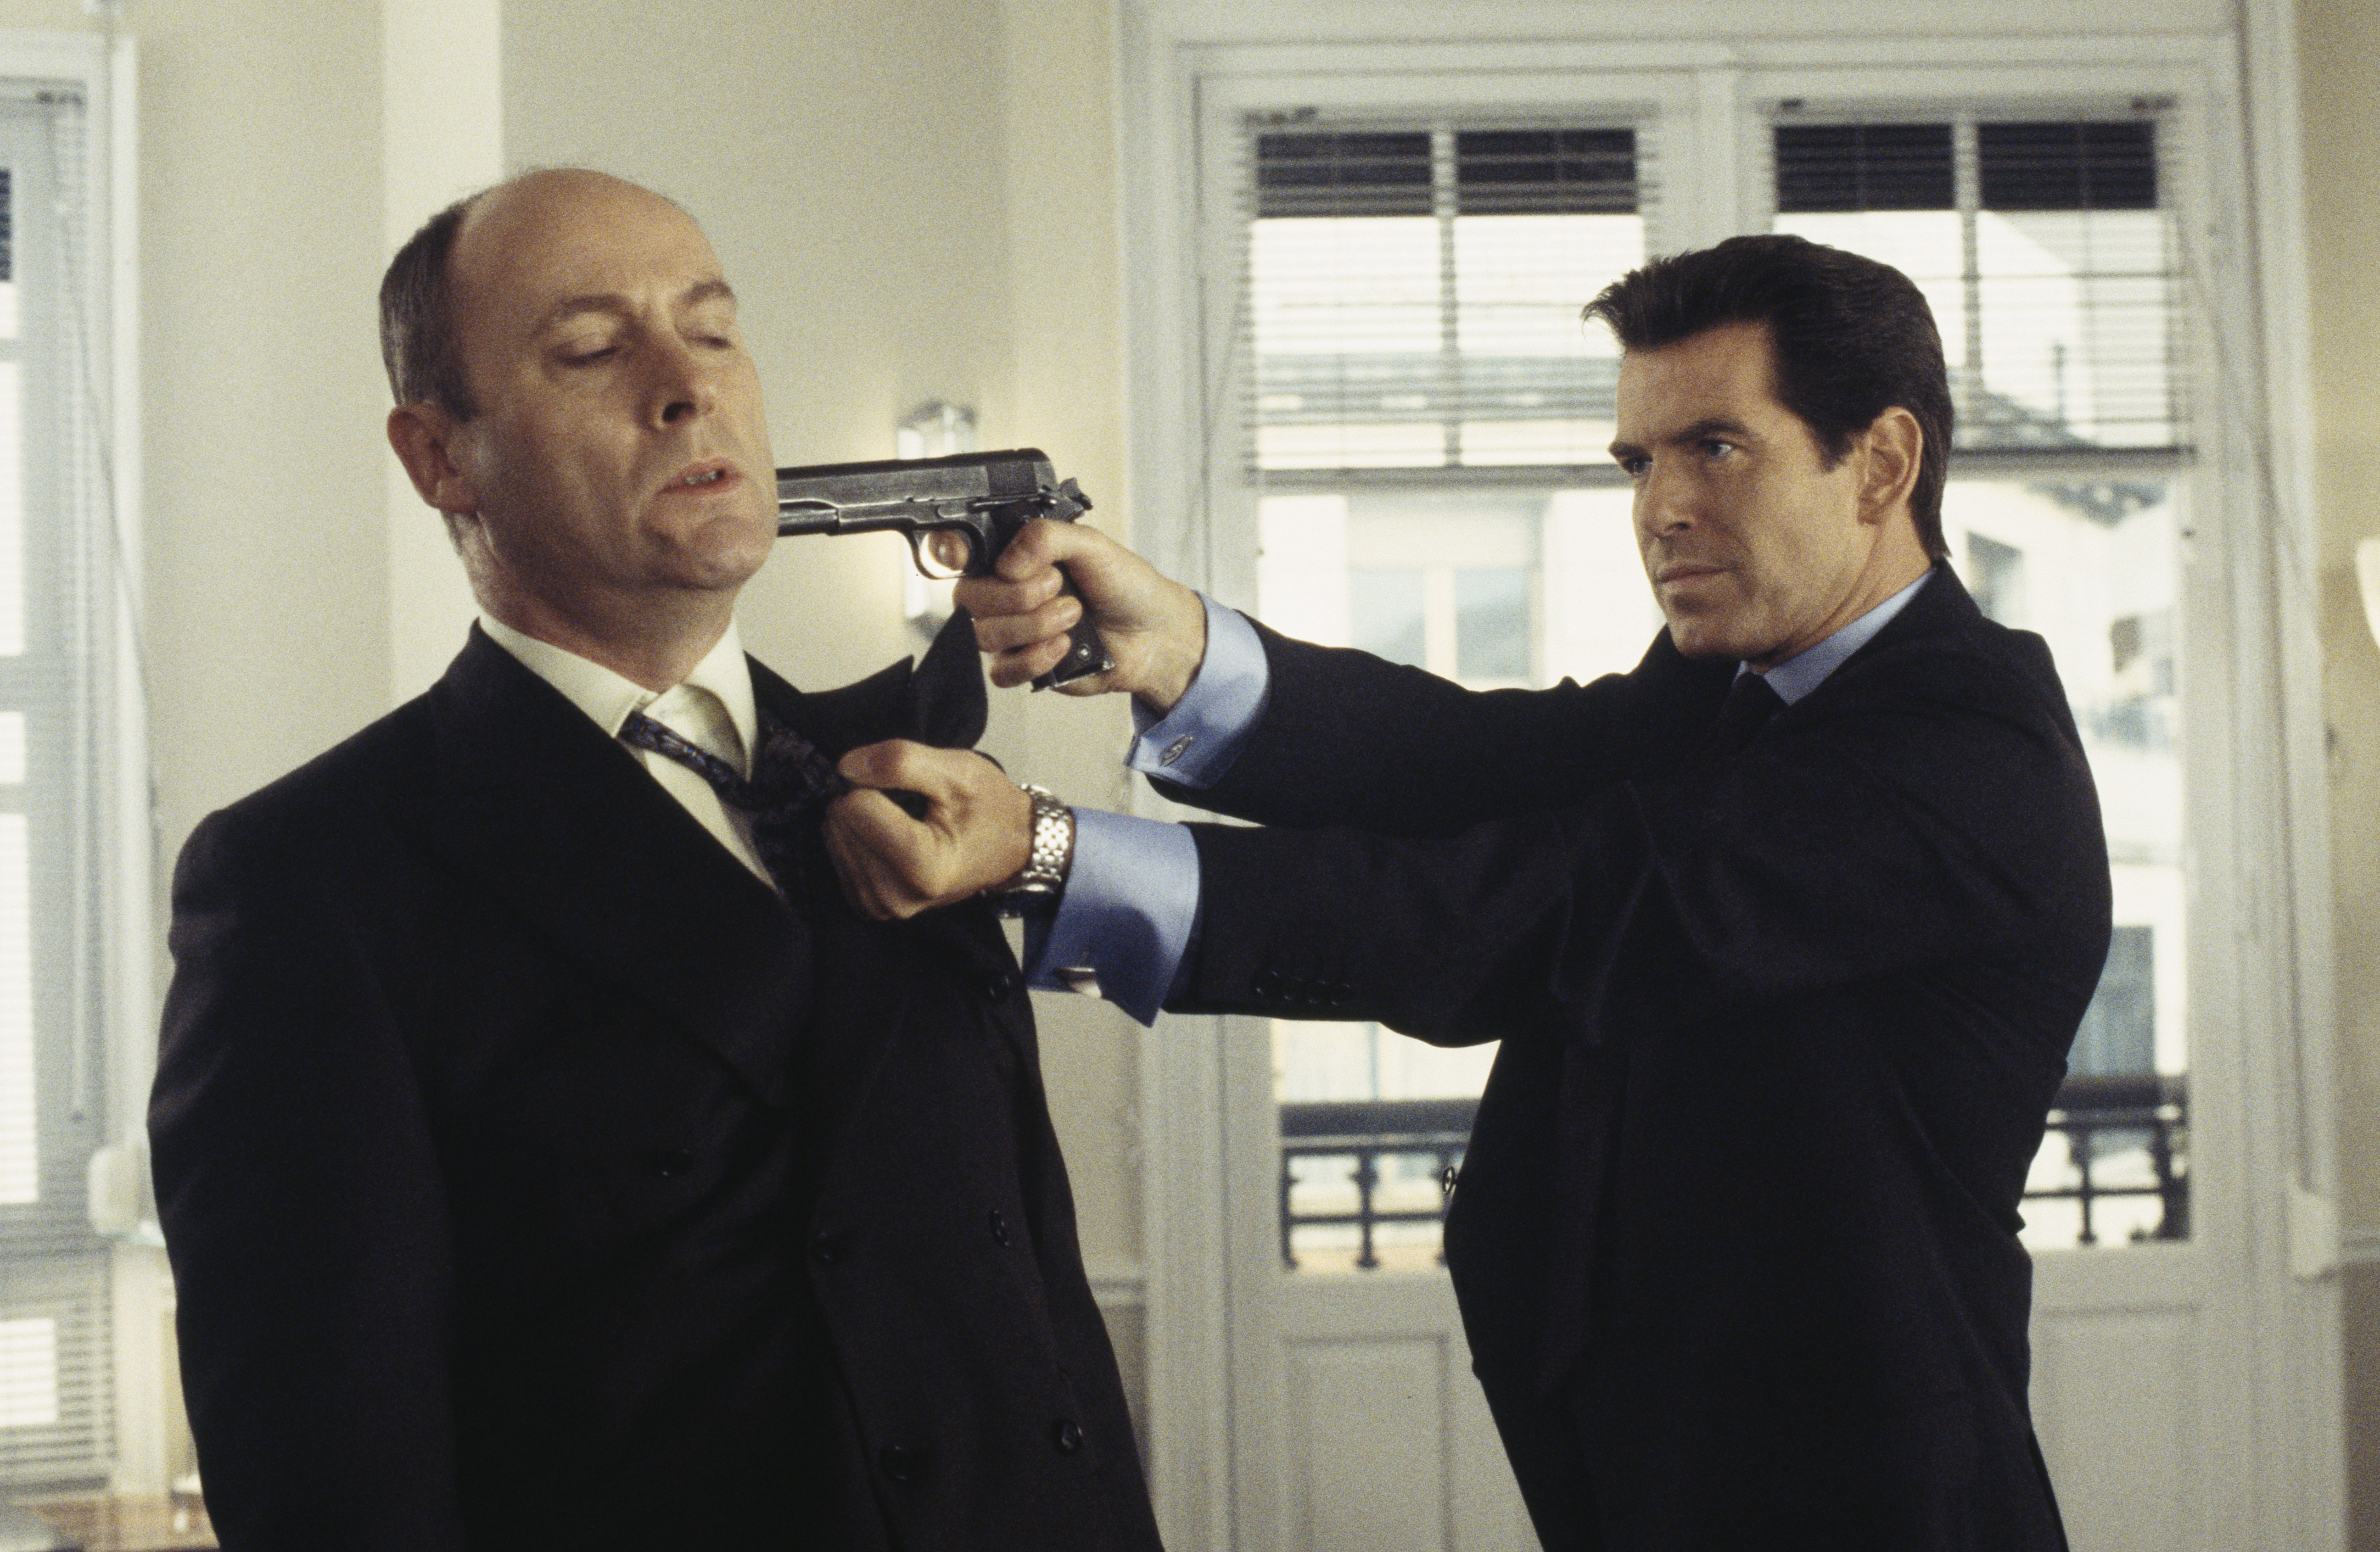 Irish actor Pierce Brosnan as 007 in the James Bond film 'The World Is Not Enough', 1999. Here he threatens Swiss banker Lachaise, played by English actor Patrick Malahide, with a Colt M1911A1 semi-automatic pistol. (Photo by Keith Hamshere/Getty Images)